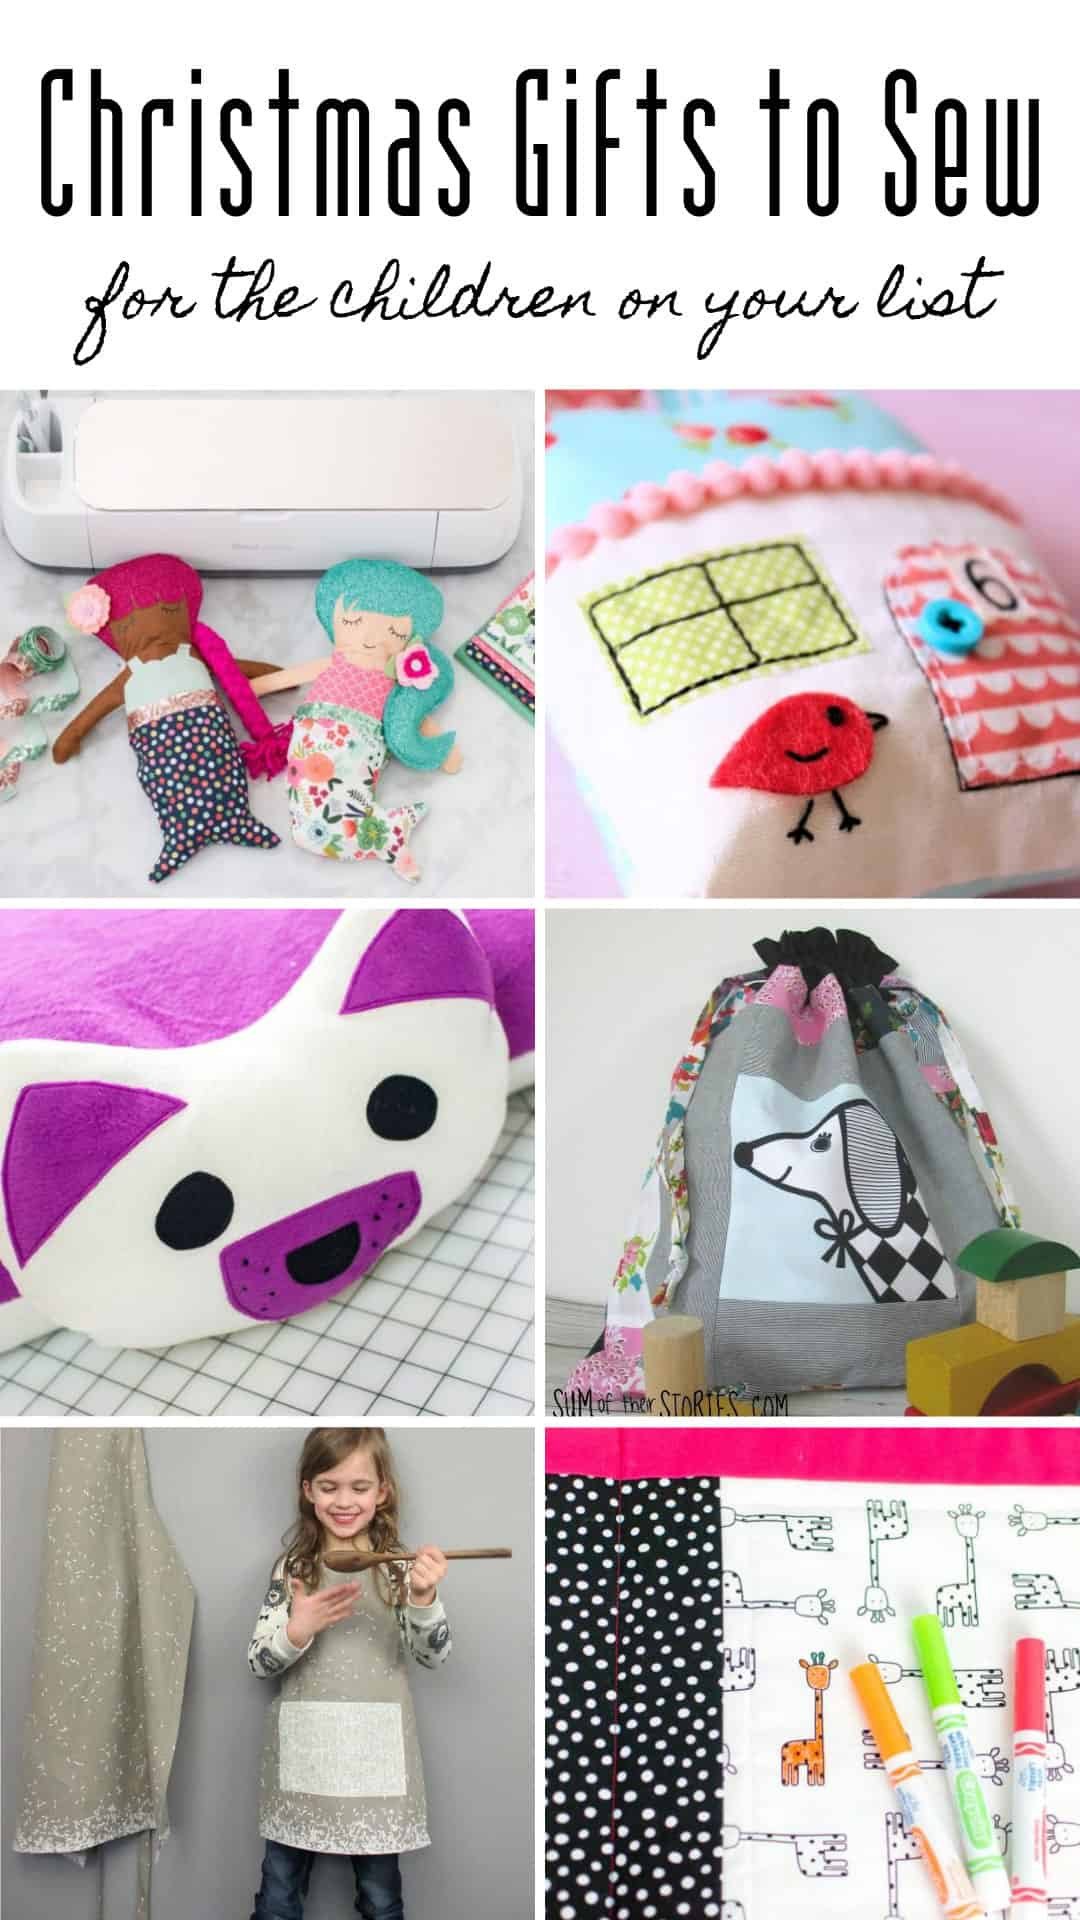 So many cute Christmas gifts to sew for kids! Love the puppy pillow!